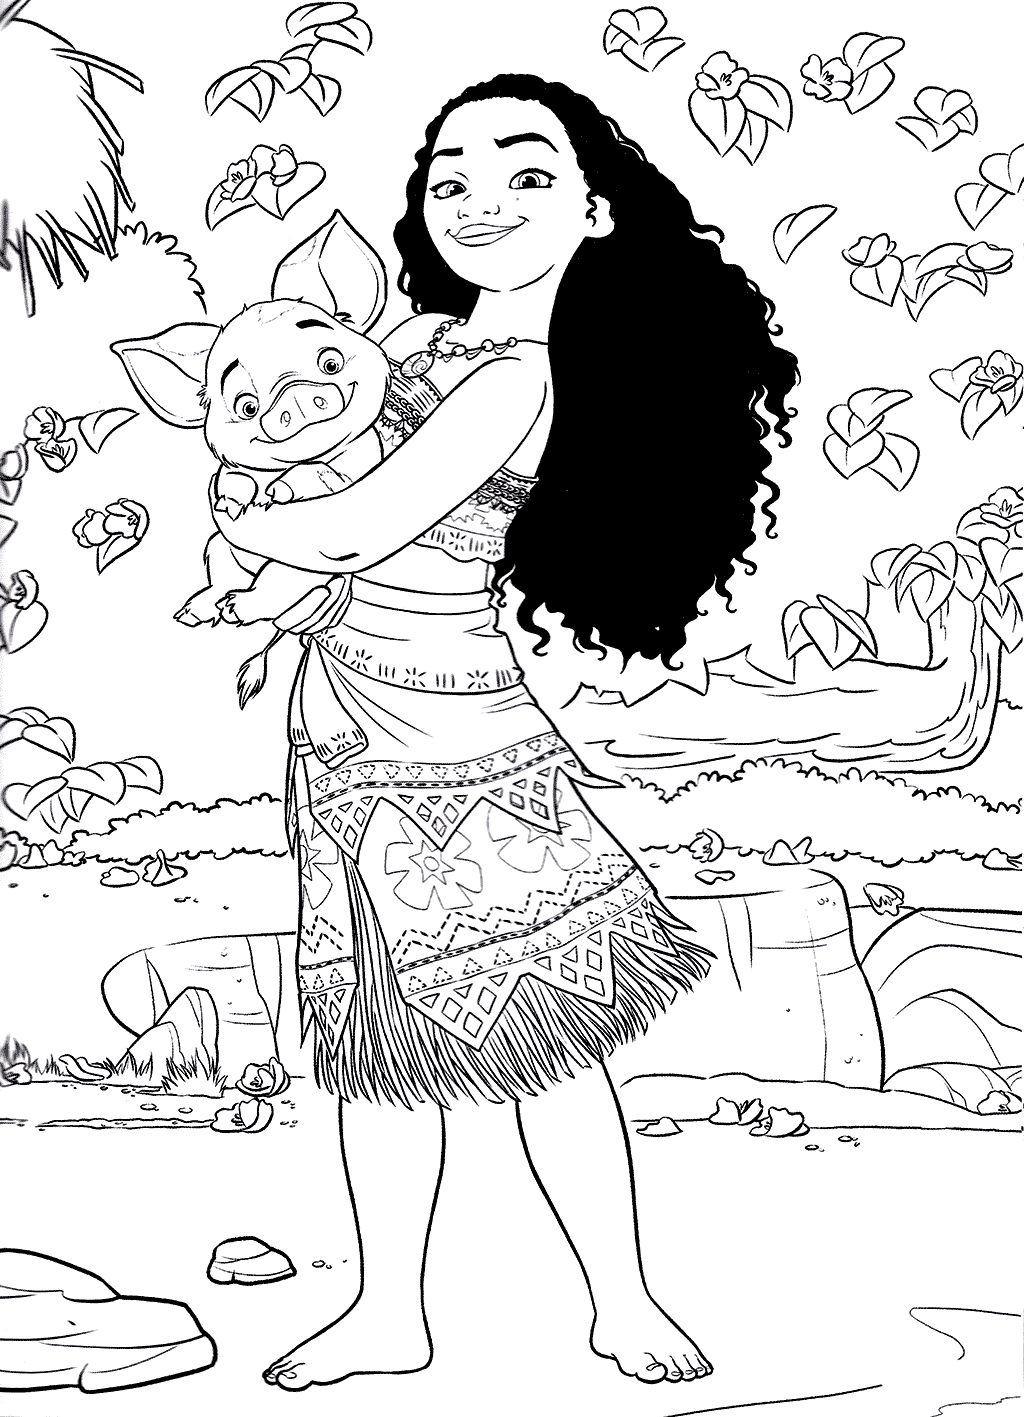 Moana Free Coloring Printable   Coloring Pages for Kids ...